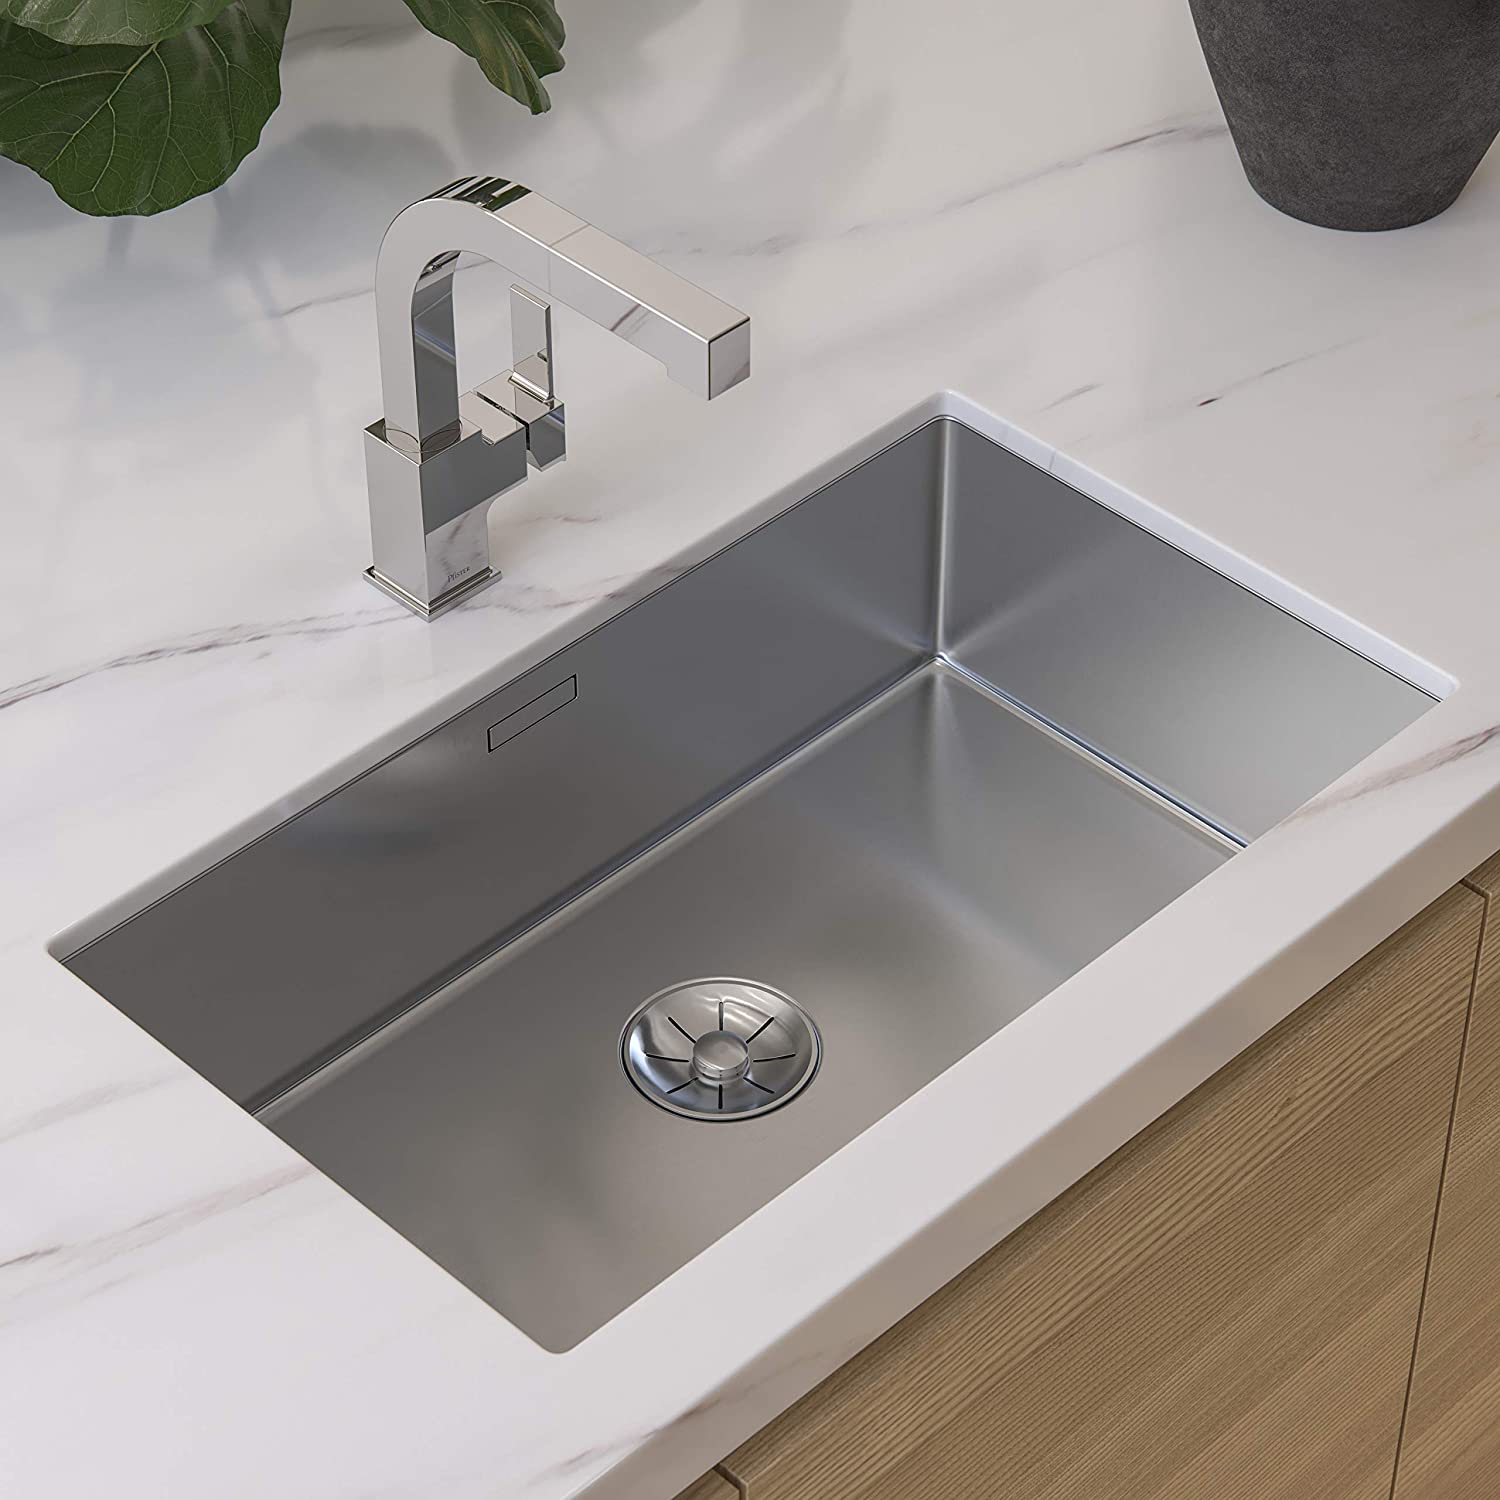 Pfister LG534-LPMC Arkitek Kitchen Faucet With Pull-Out Sprayhead, Polished Chrome - -